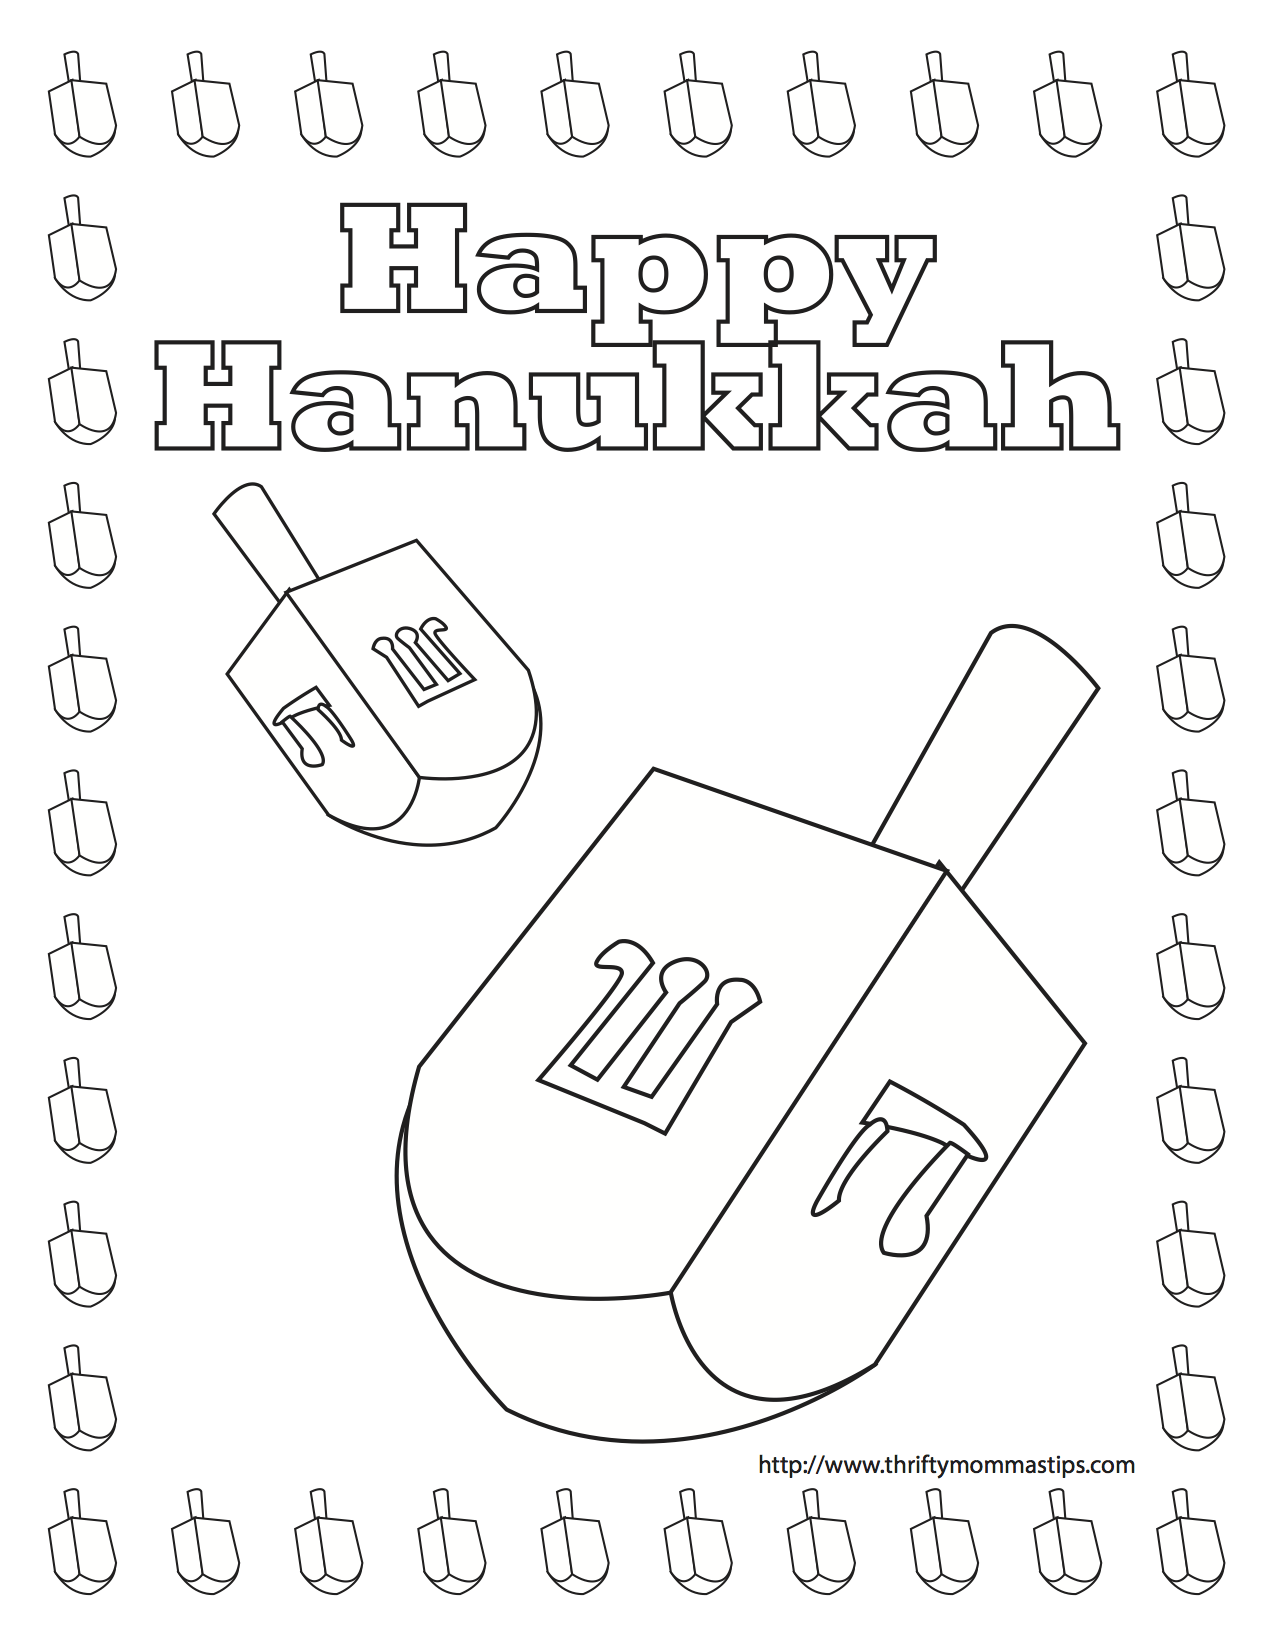 Happy Hanukkah Coloring Pages At Getcolorings